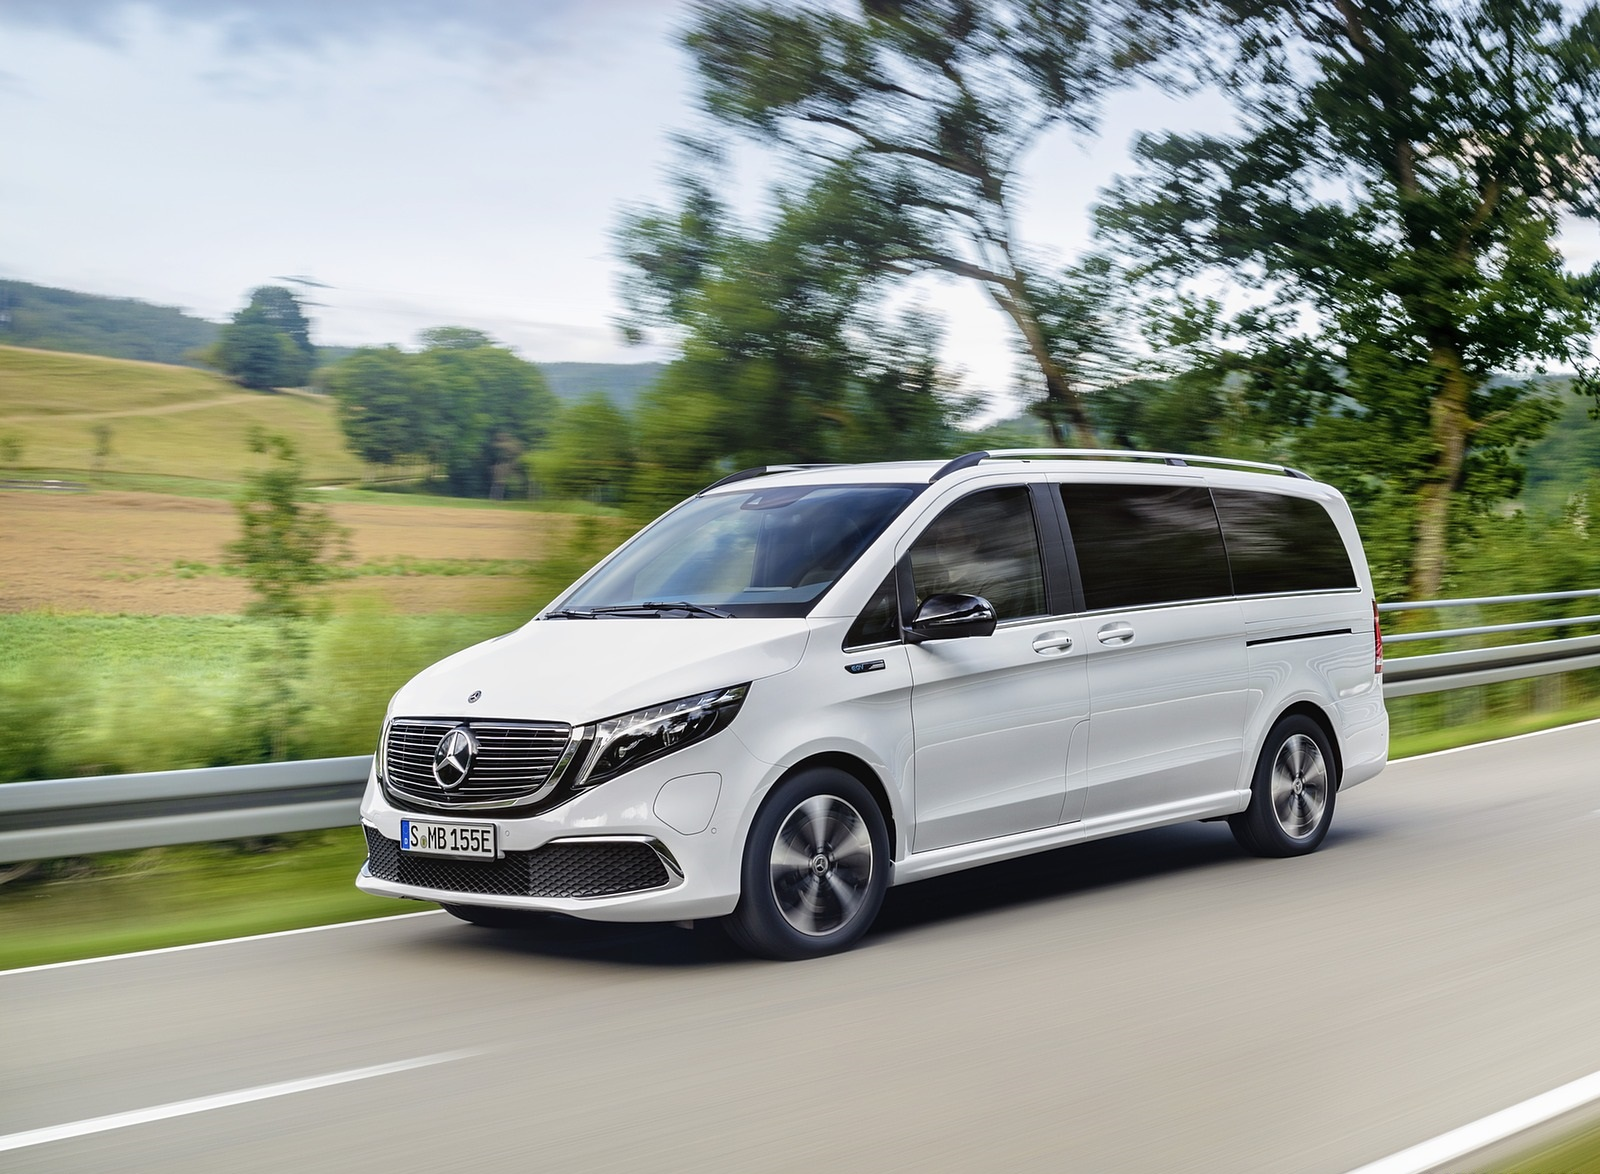 2020 Mercedes-Benz EQV 300 (Color: Mountain Crystal White Metallic) Front Three-Quarter Wallpapers (1)